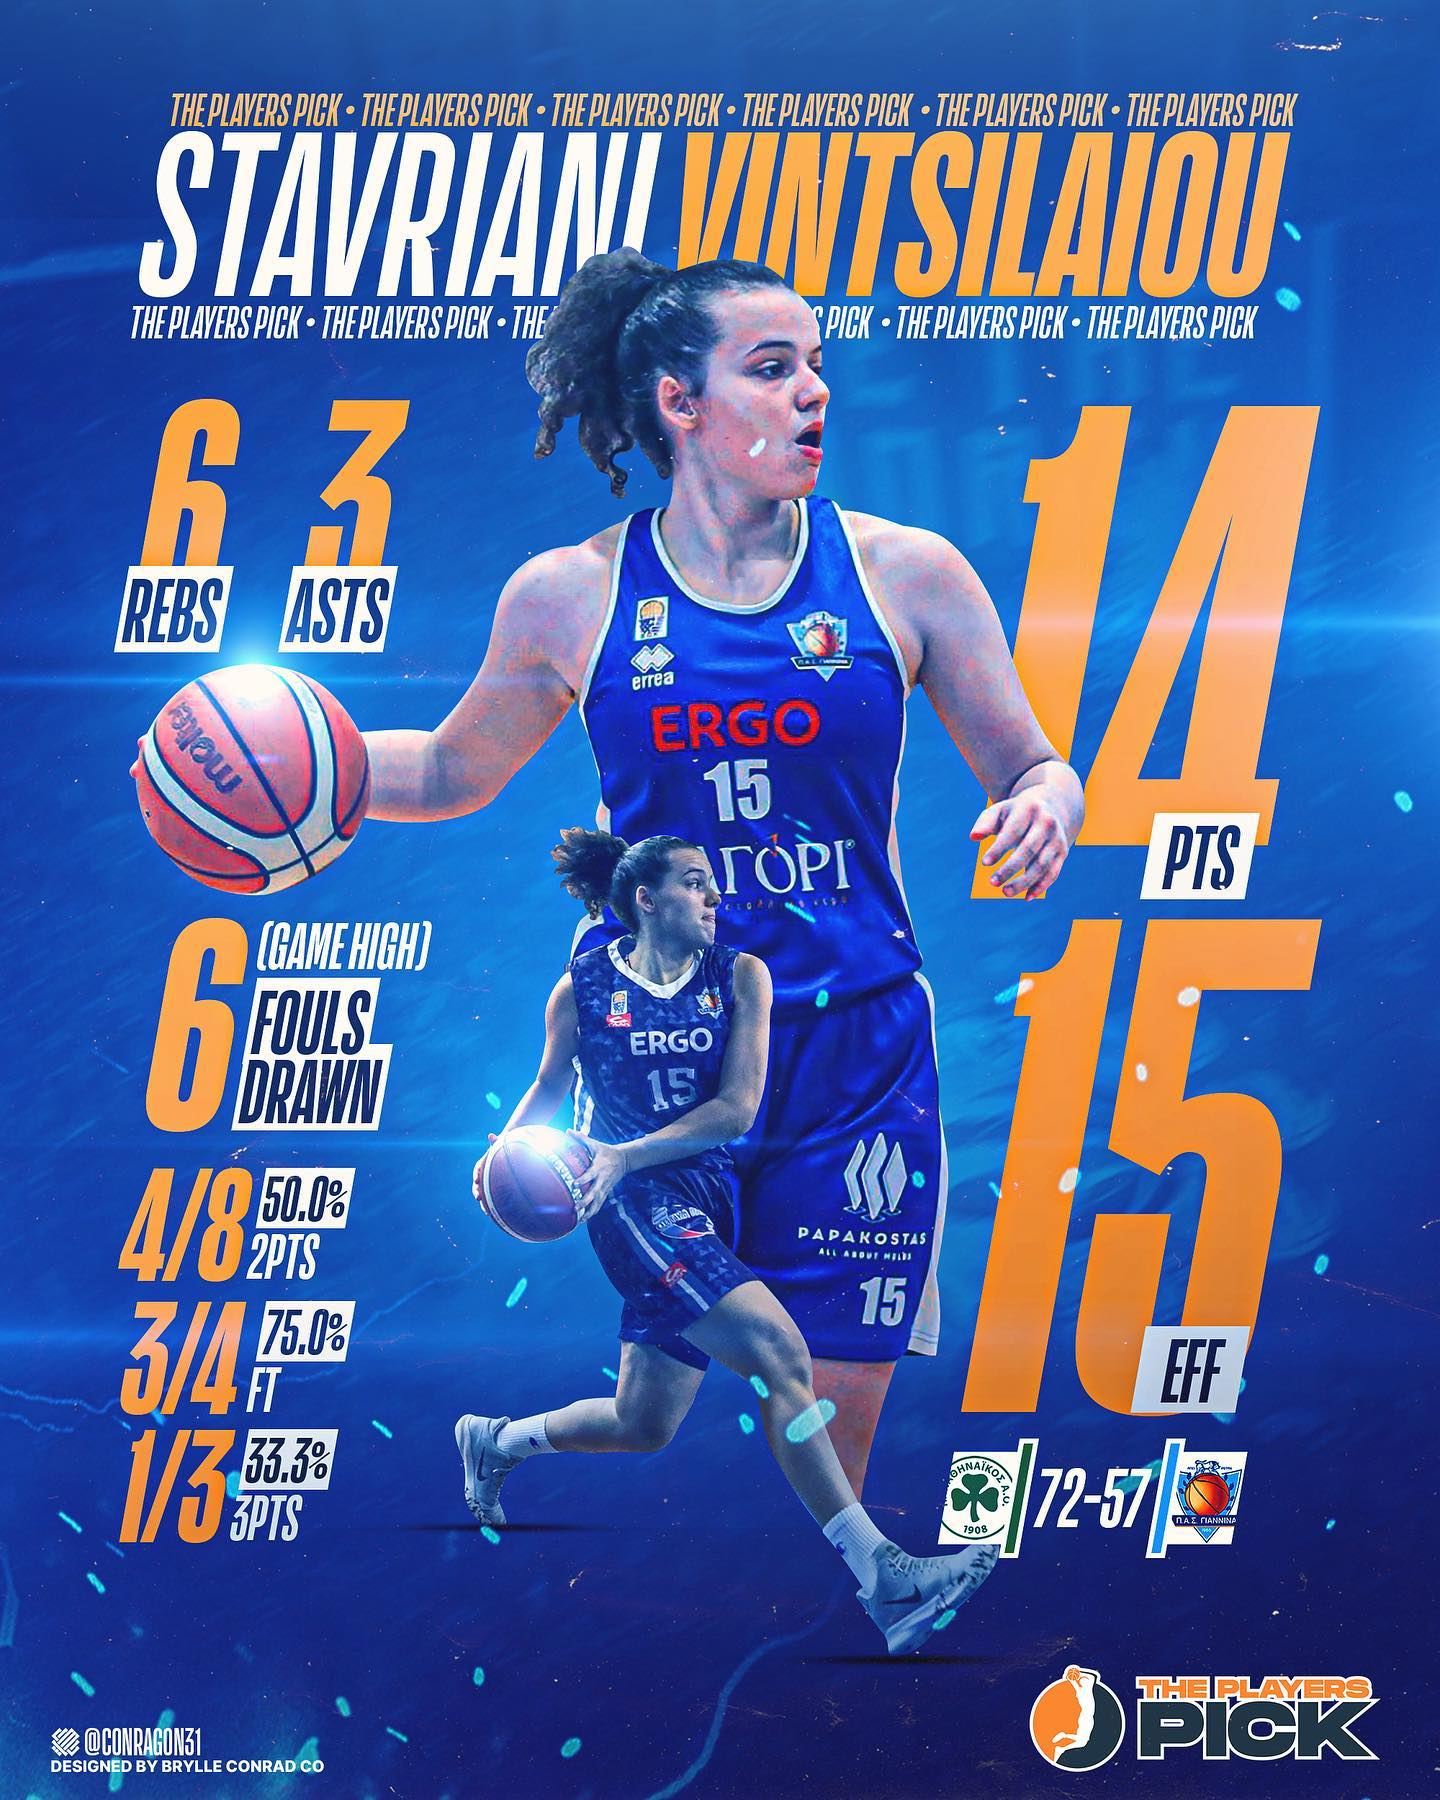 Stavriani Vintsilaiou had a great performance vs Panathinaikos in Greece!